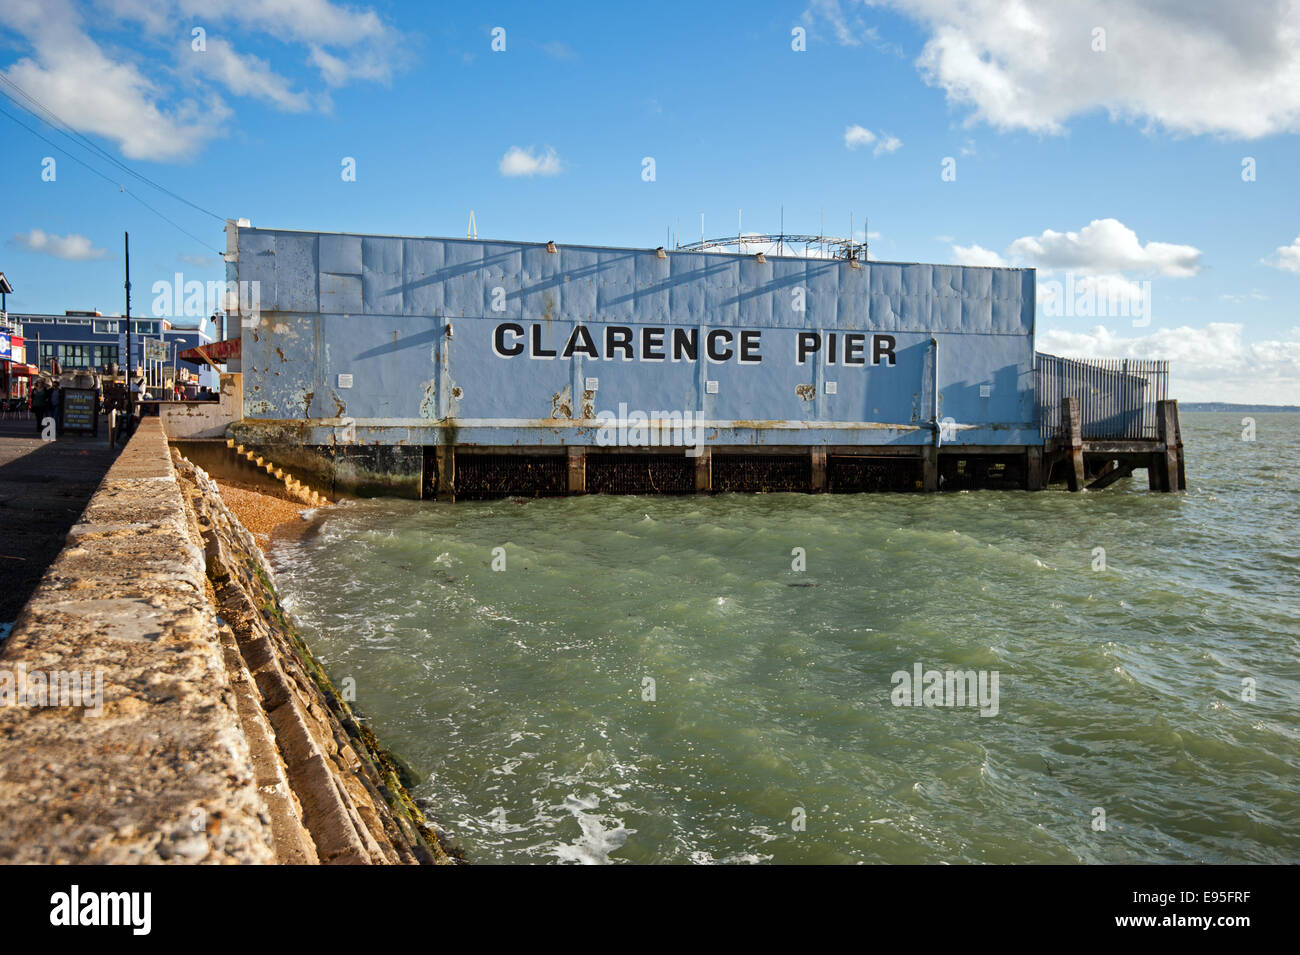 Clarence Pier on Southsea seafront, Portsmouth Stock Photo